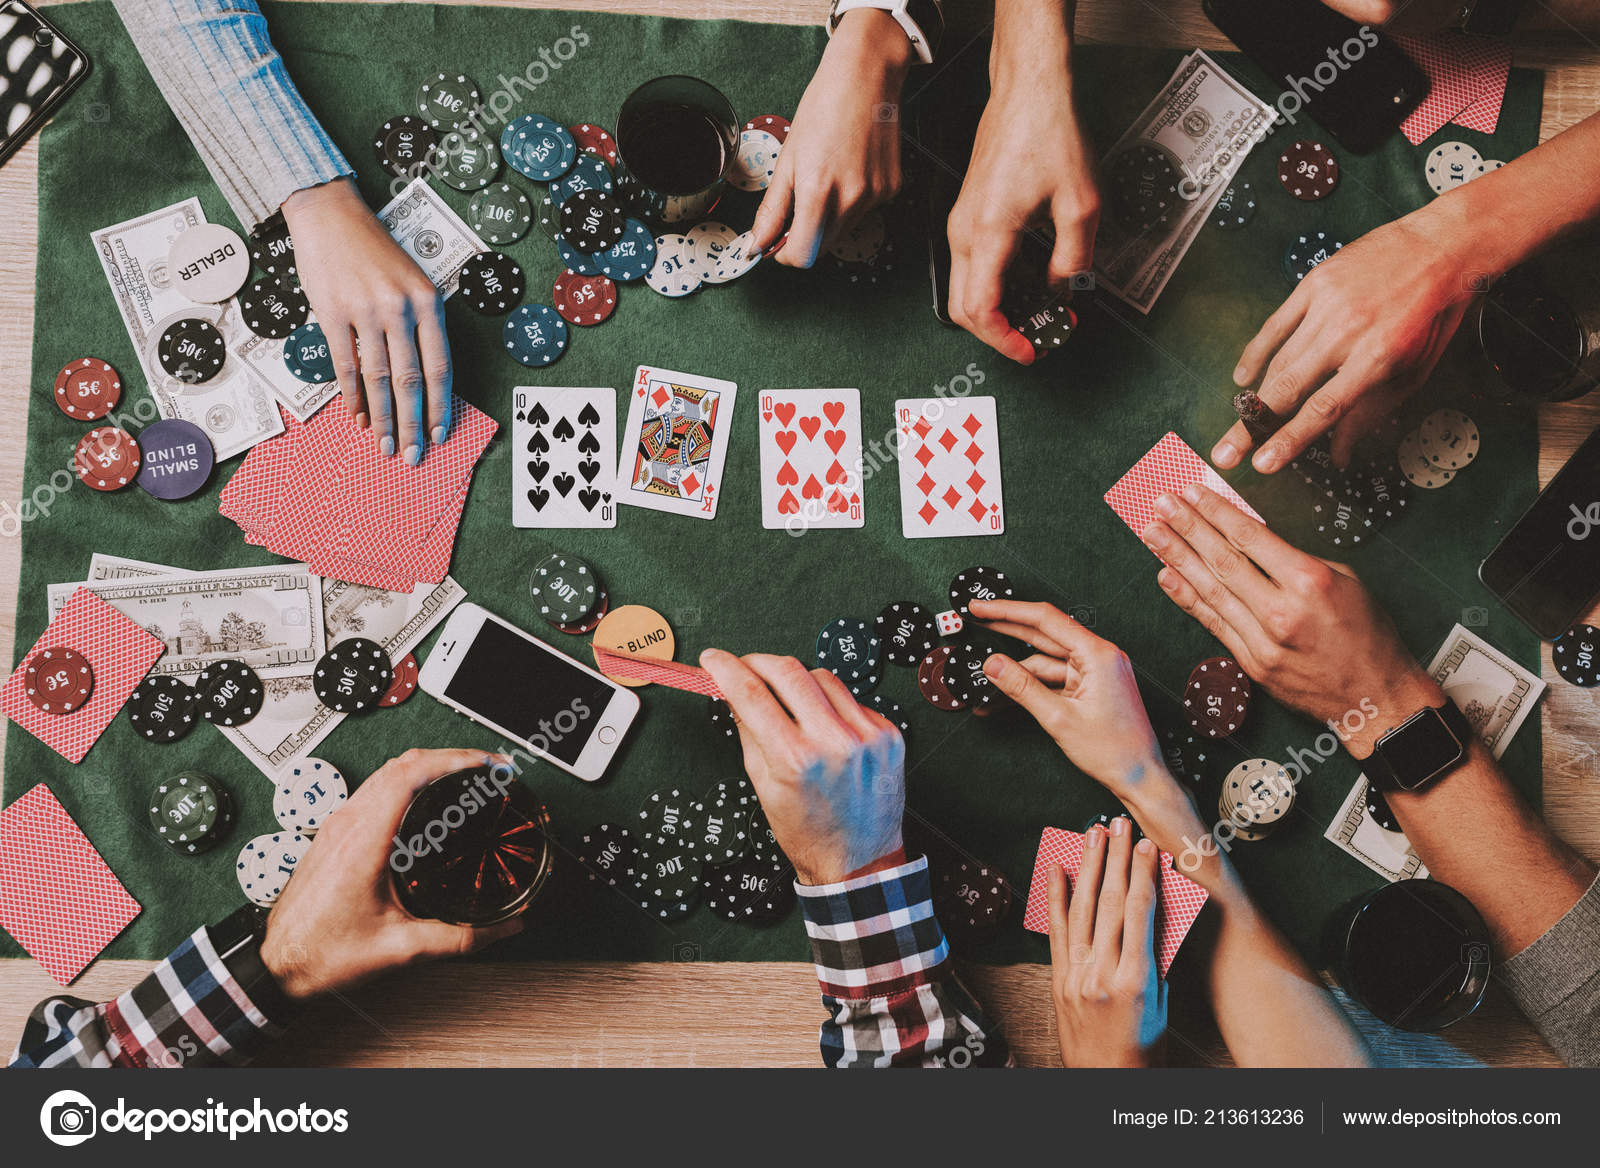 Young Friends Playing Poker Party Home Playing Games Indoor Fun ⬇ Stock  Photo, Image by © vadimphoto1@gmail.com #213613236